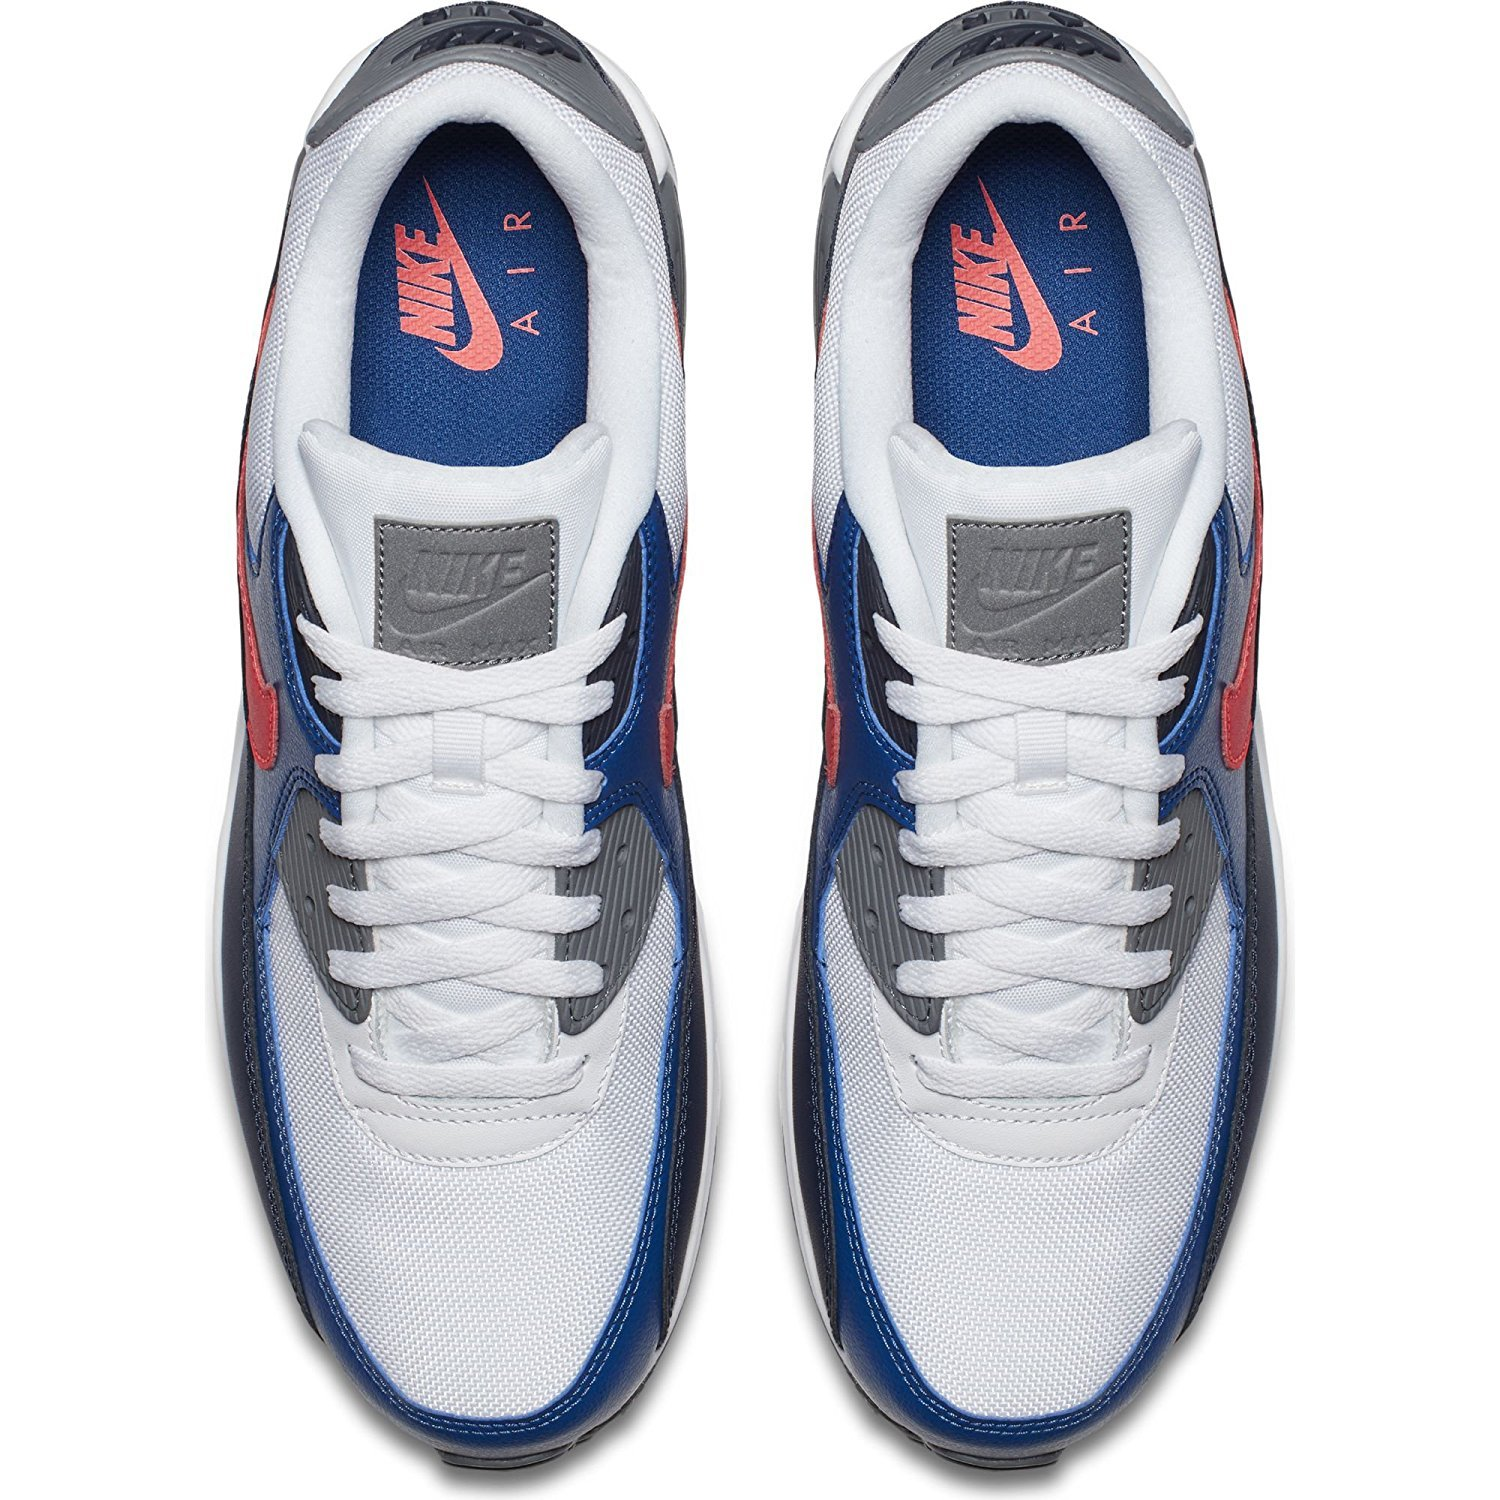 the latest c385f 15232 NIKE Men s Air Max 90 Essential, White Solar RED-Obsidian-Gym Blue, 14 UK   Amazon.co.uk  Shoes   Bags